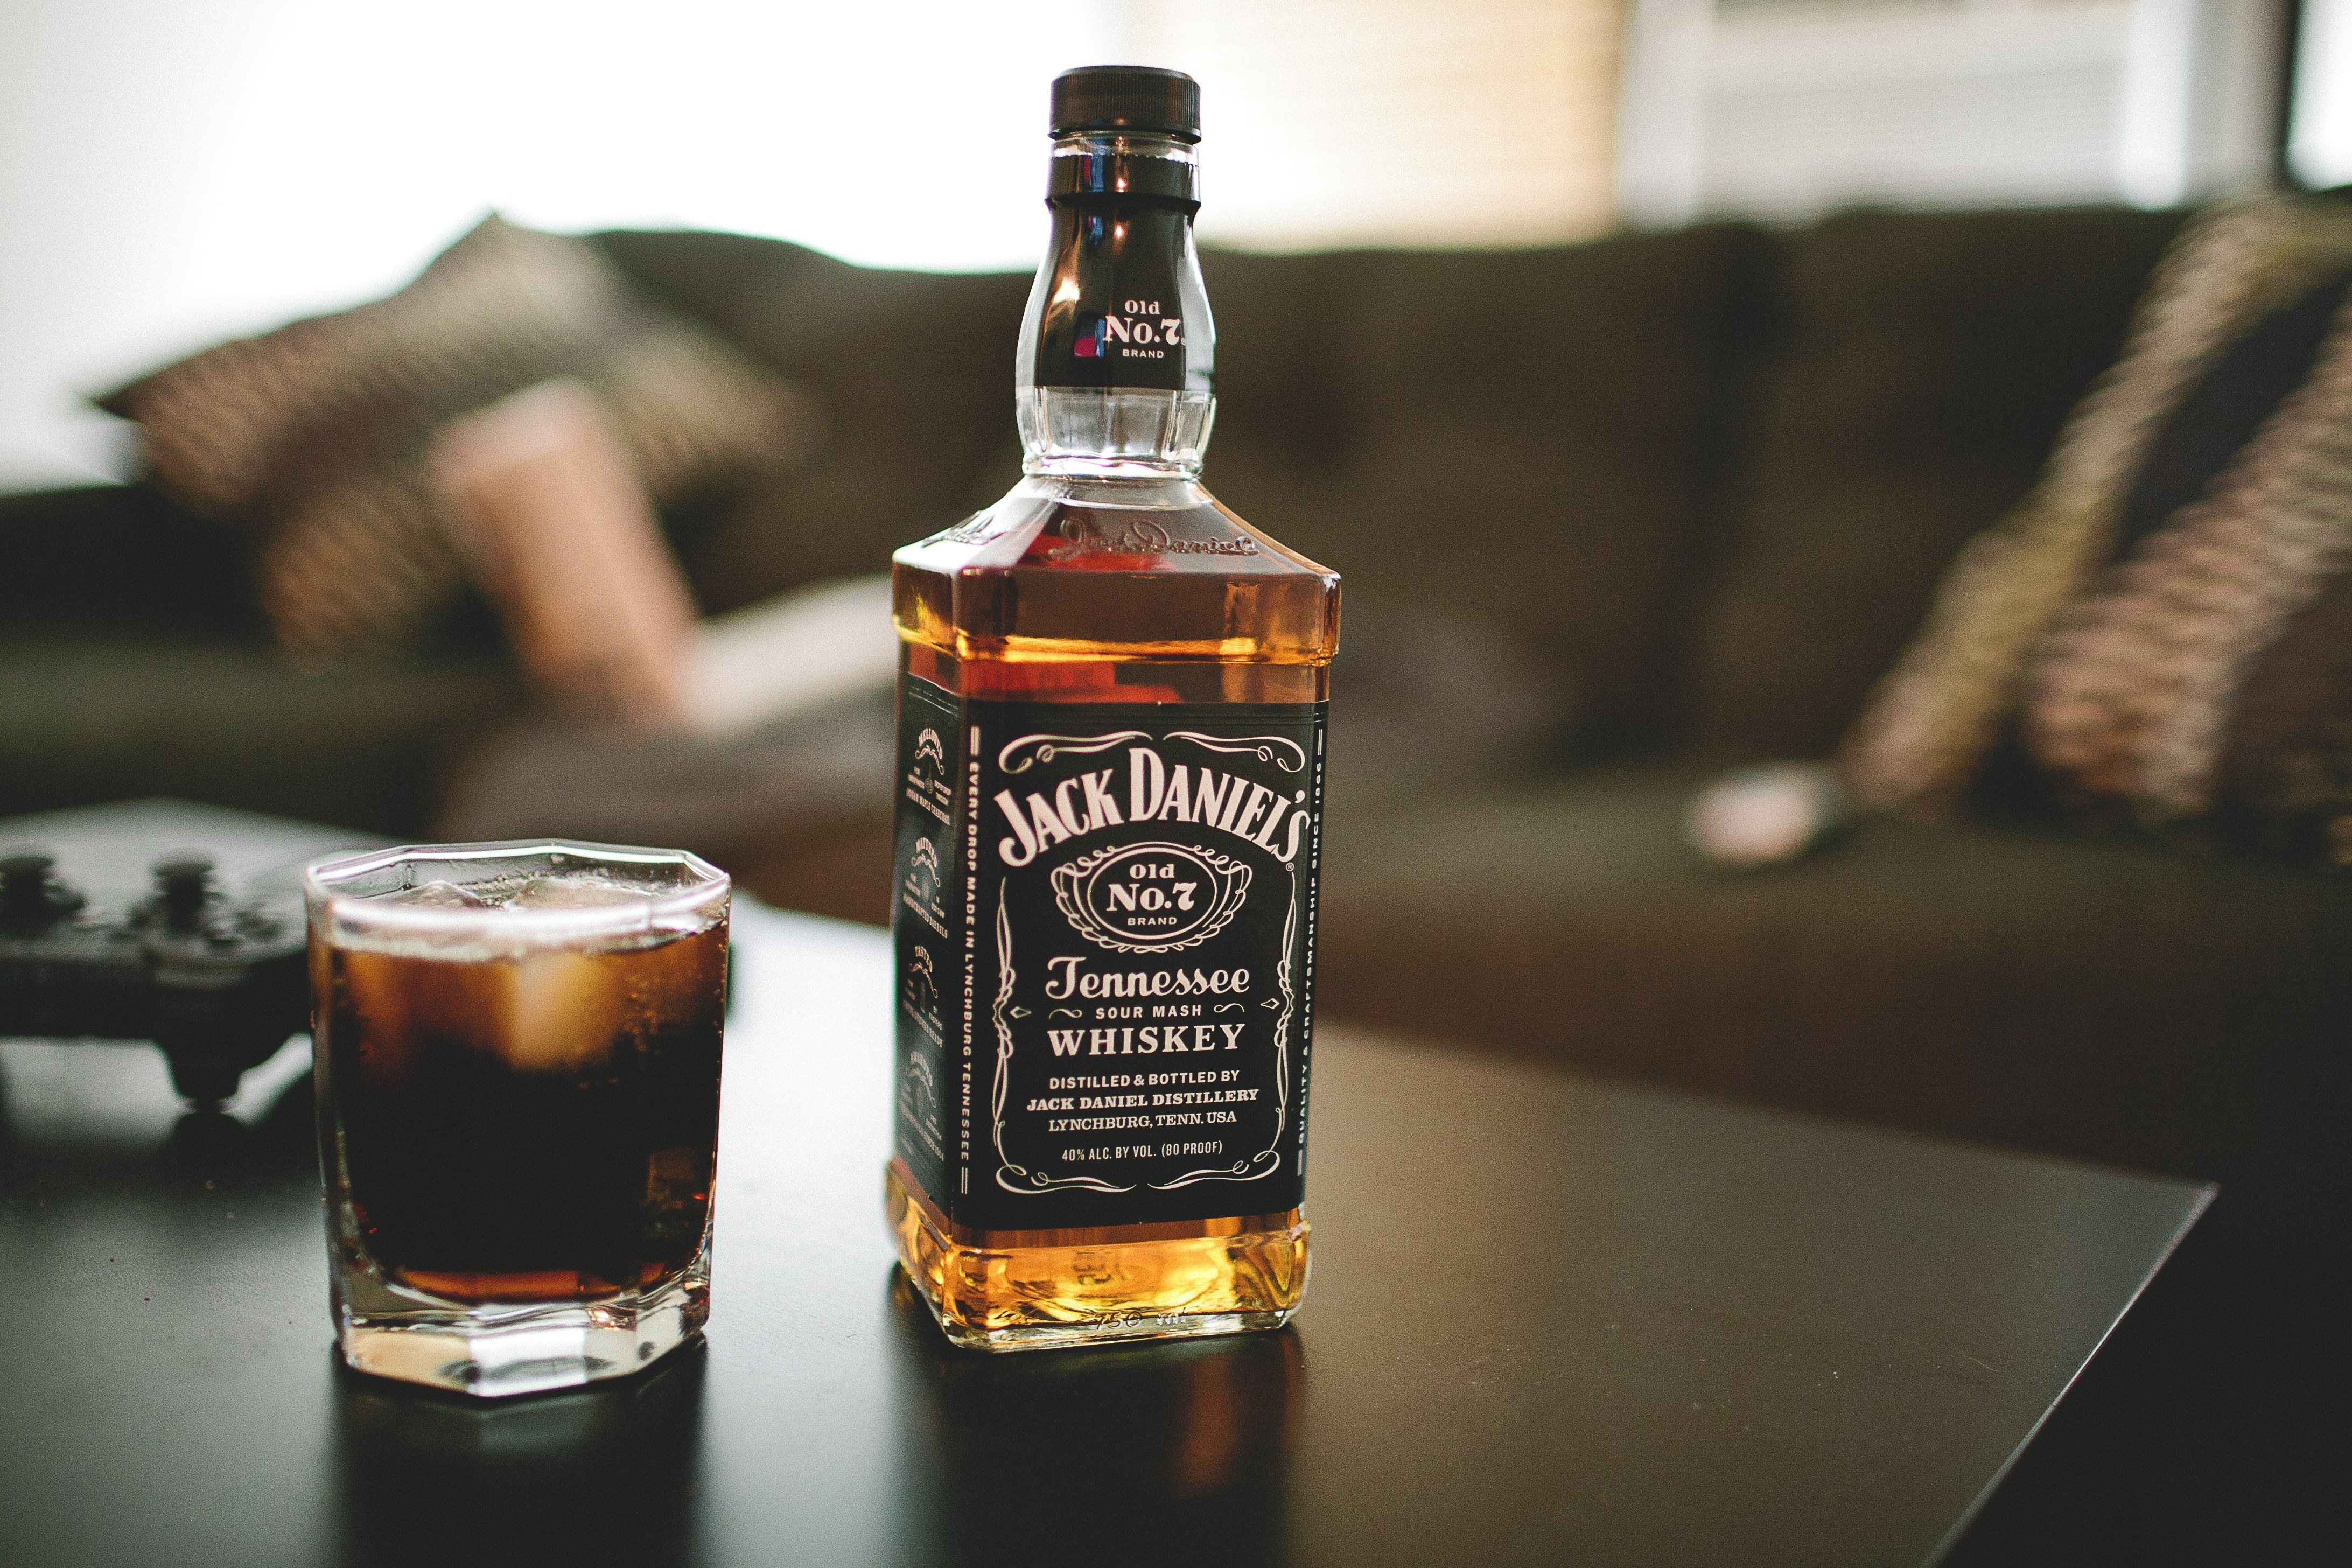 Jack daniels known people famous people news and biographies for Photos jack daniels